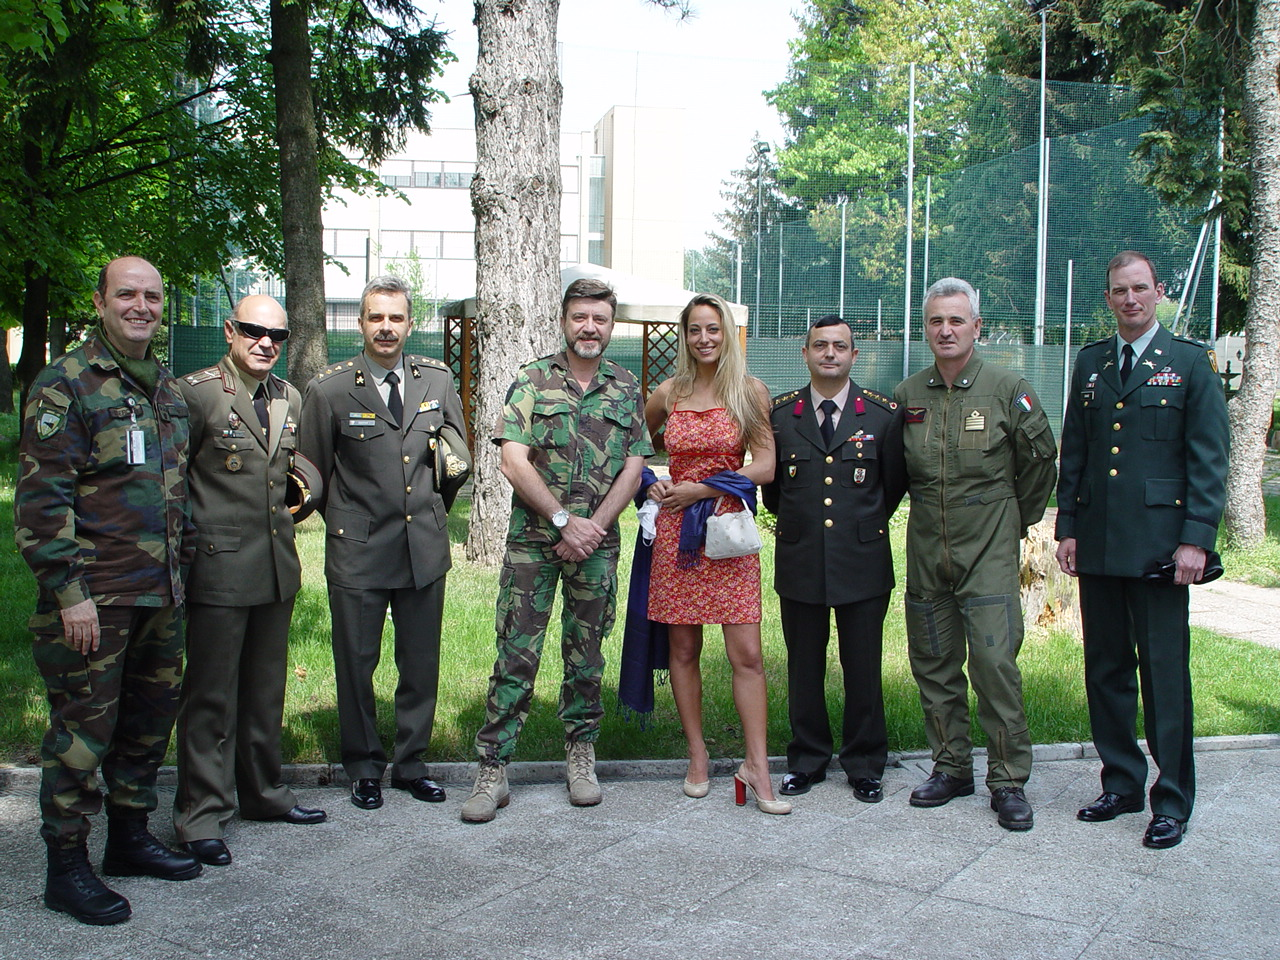 Jessica with the military heads of NATO's Rapidly Deployable Corps, for whom Jessica is the celebrity spokesperson to promote their charity and philanthropic projects in war-torn countries